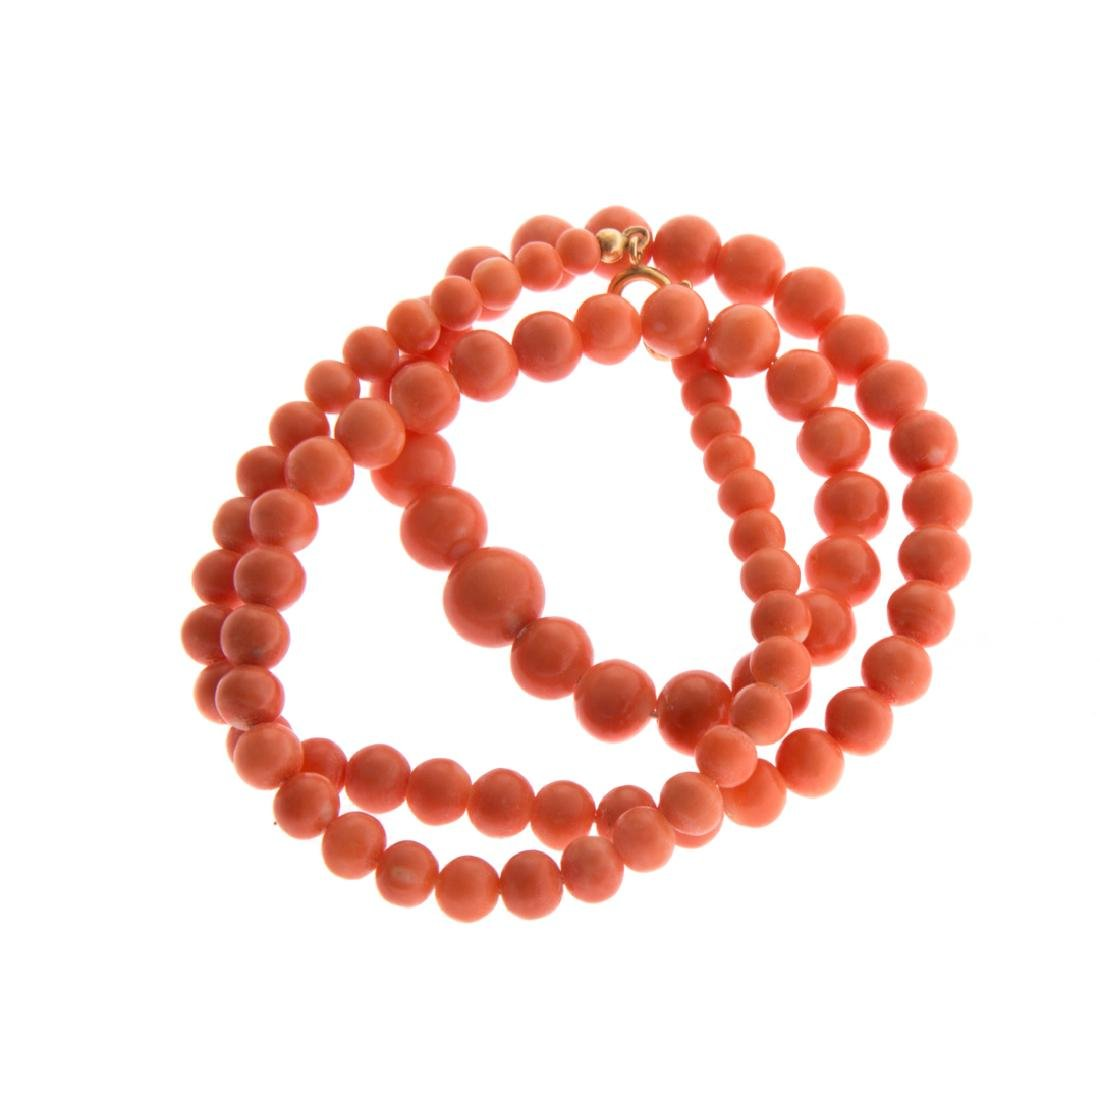 A Strand of Coral Beads and Coral Ring in Gold - 5